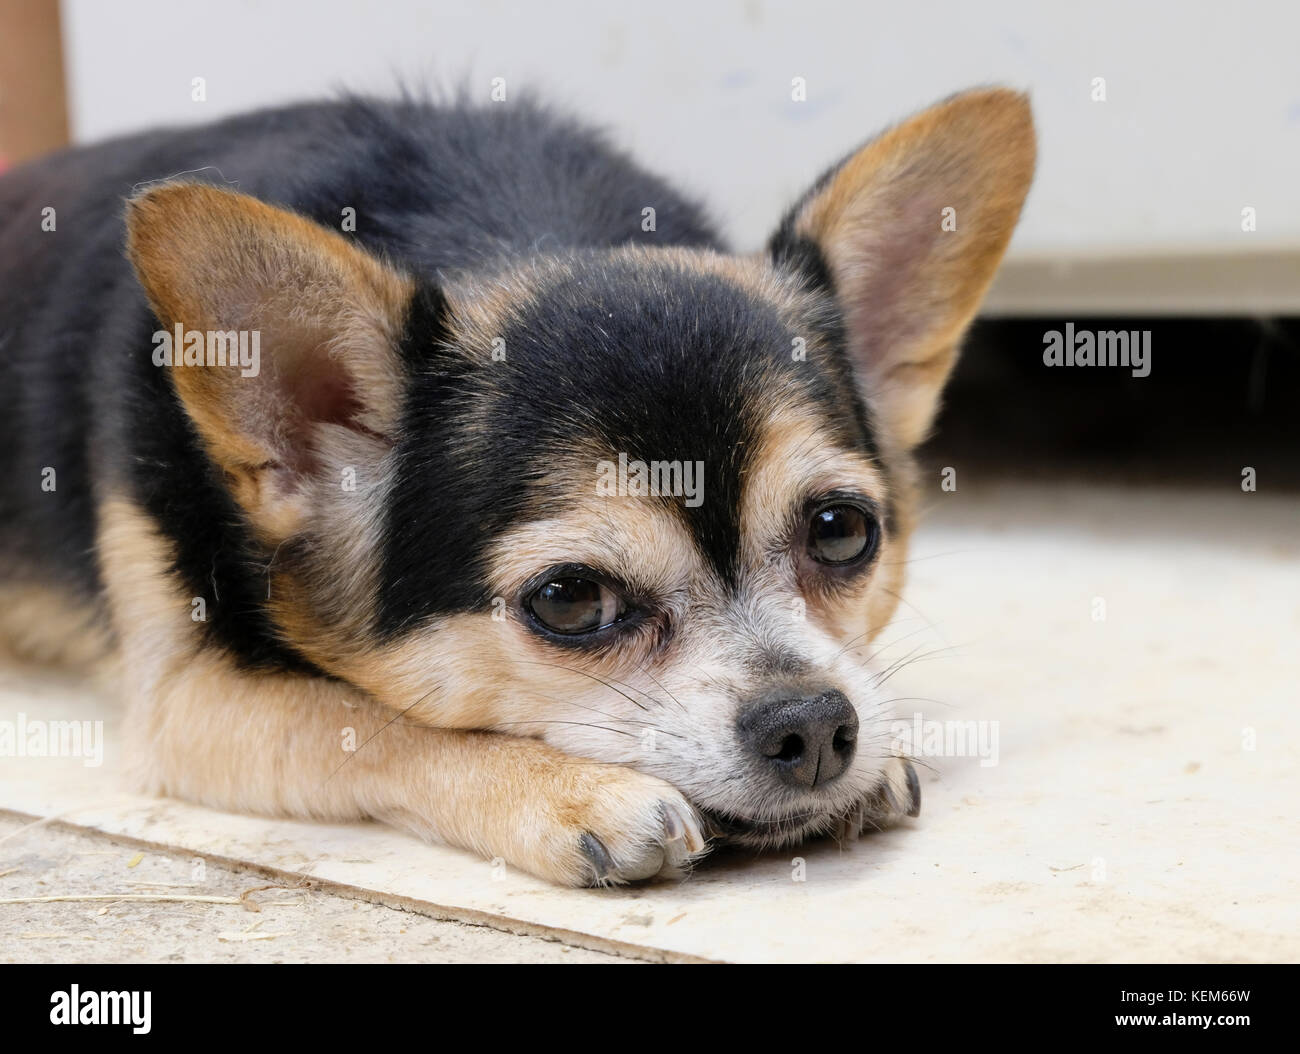 Elderly female Chihuahua dog lying down facing camera - Stock Image